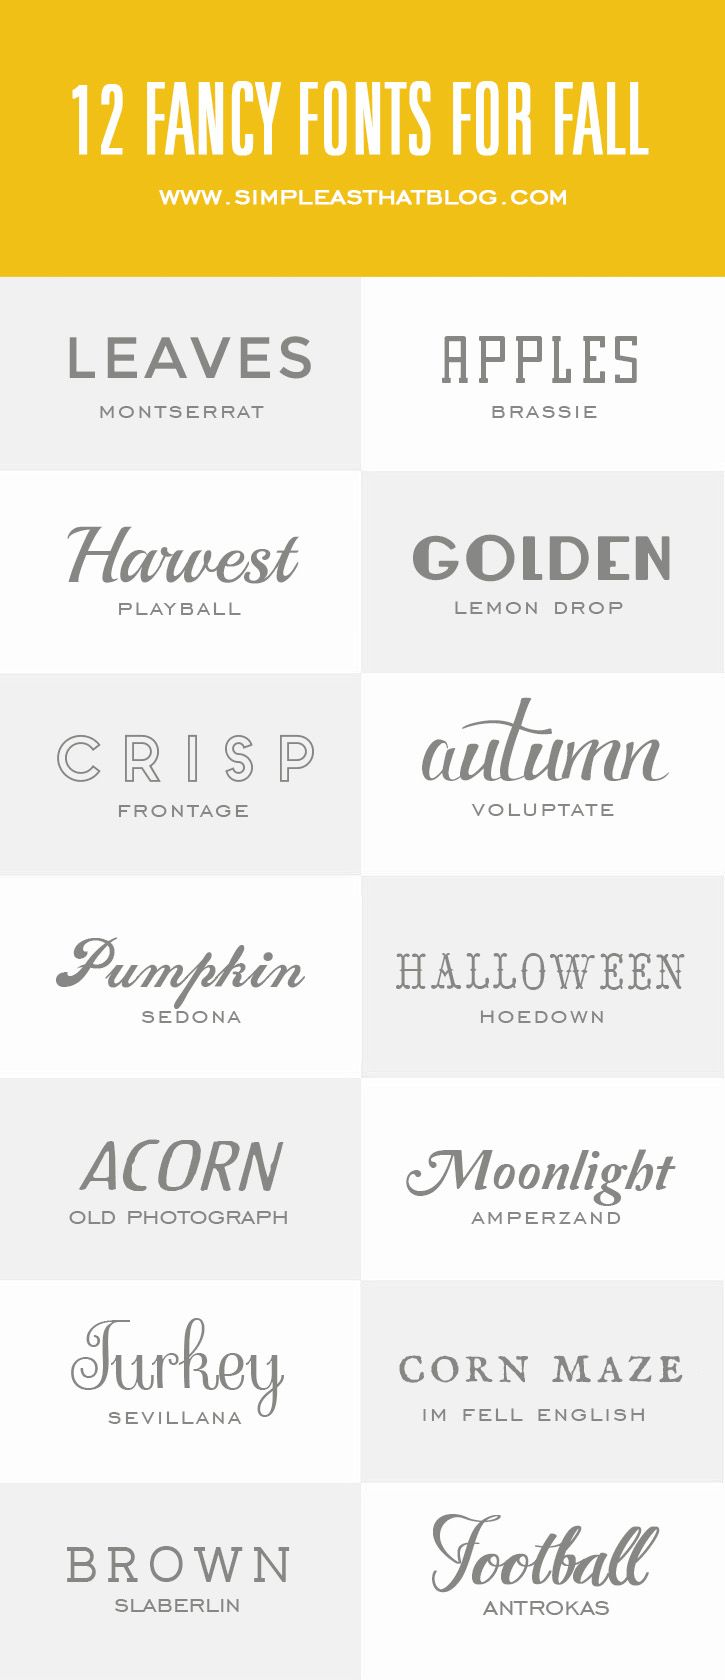 14 Fancy Fonts for Fall - simple as that